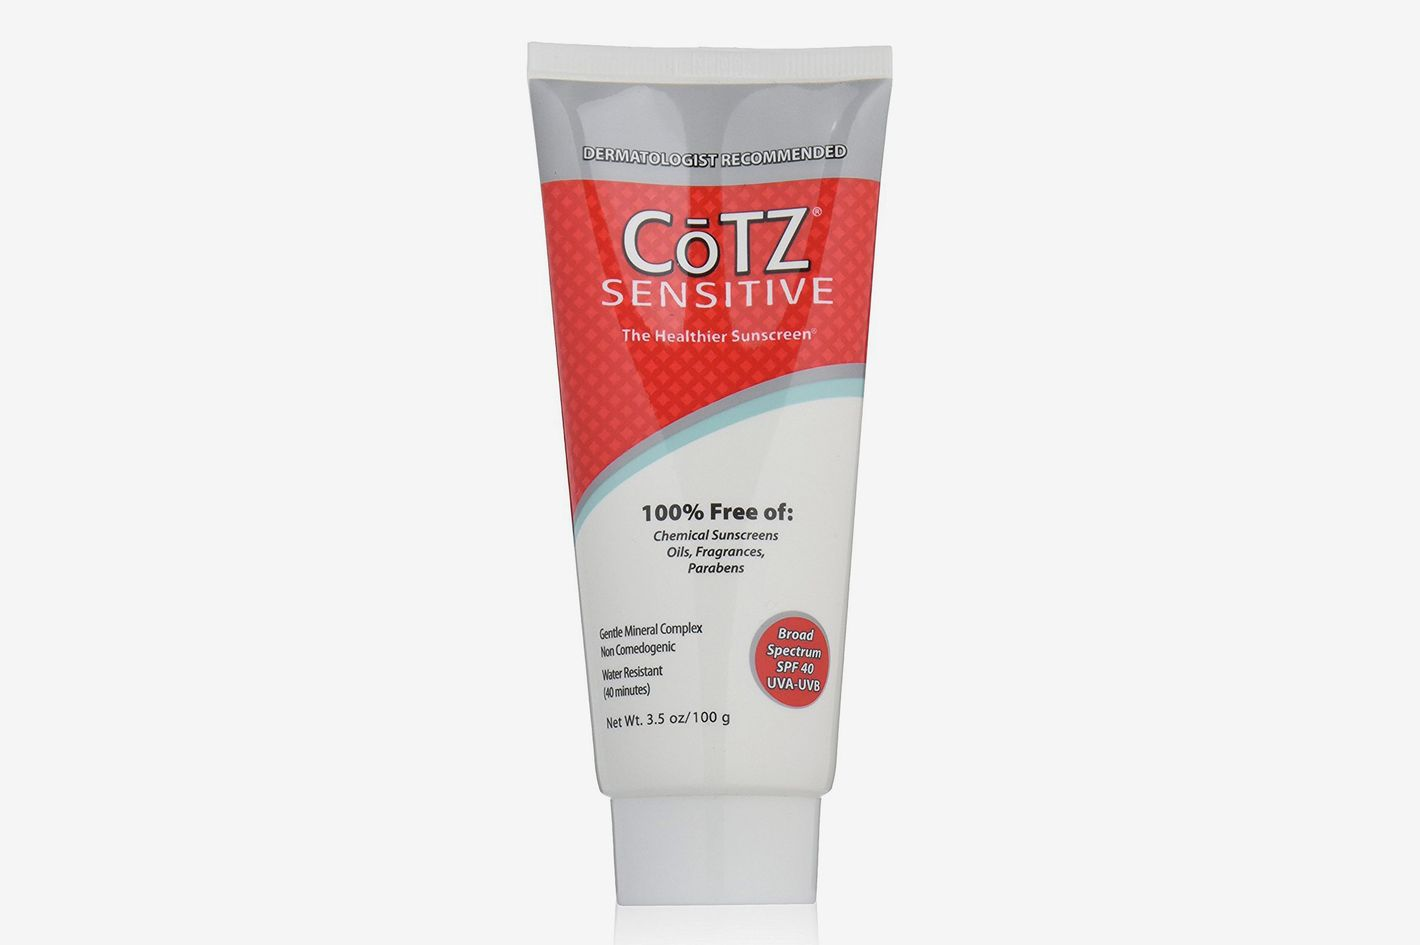 CoTZ SPF 40 UVB/UVA Sunscreen for Sensitive Skin